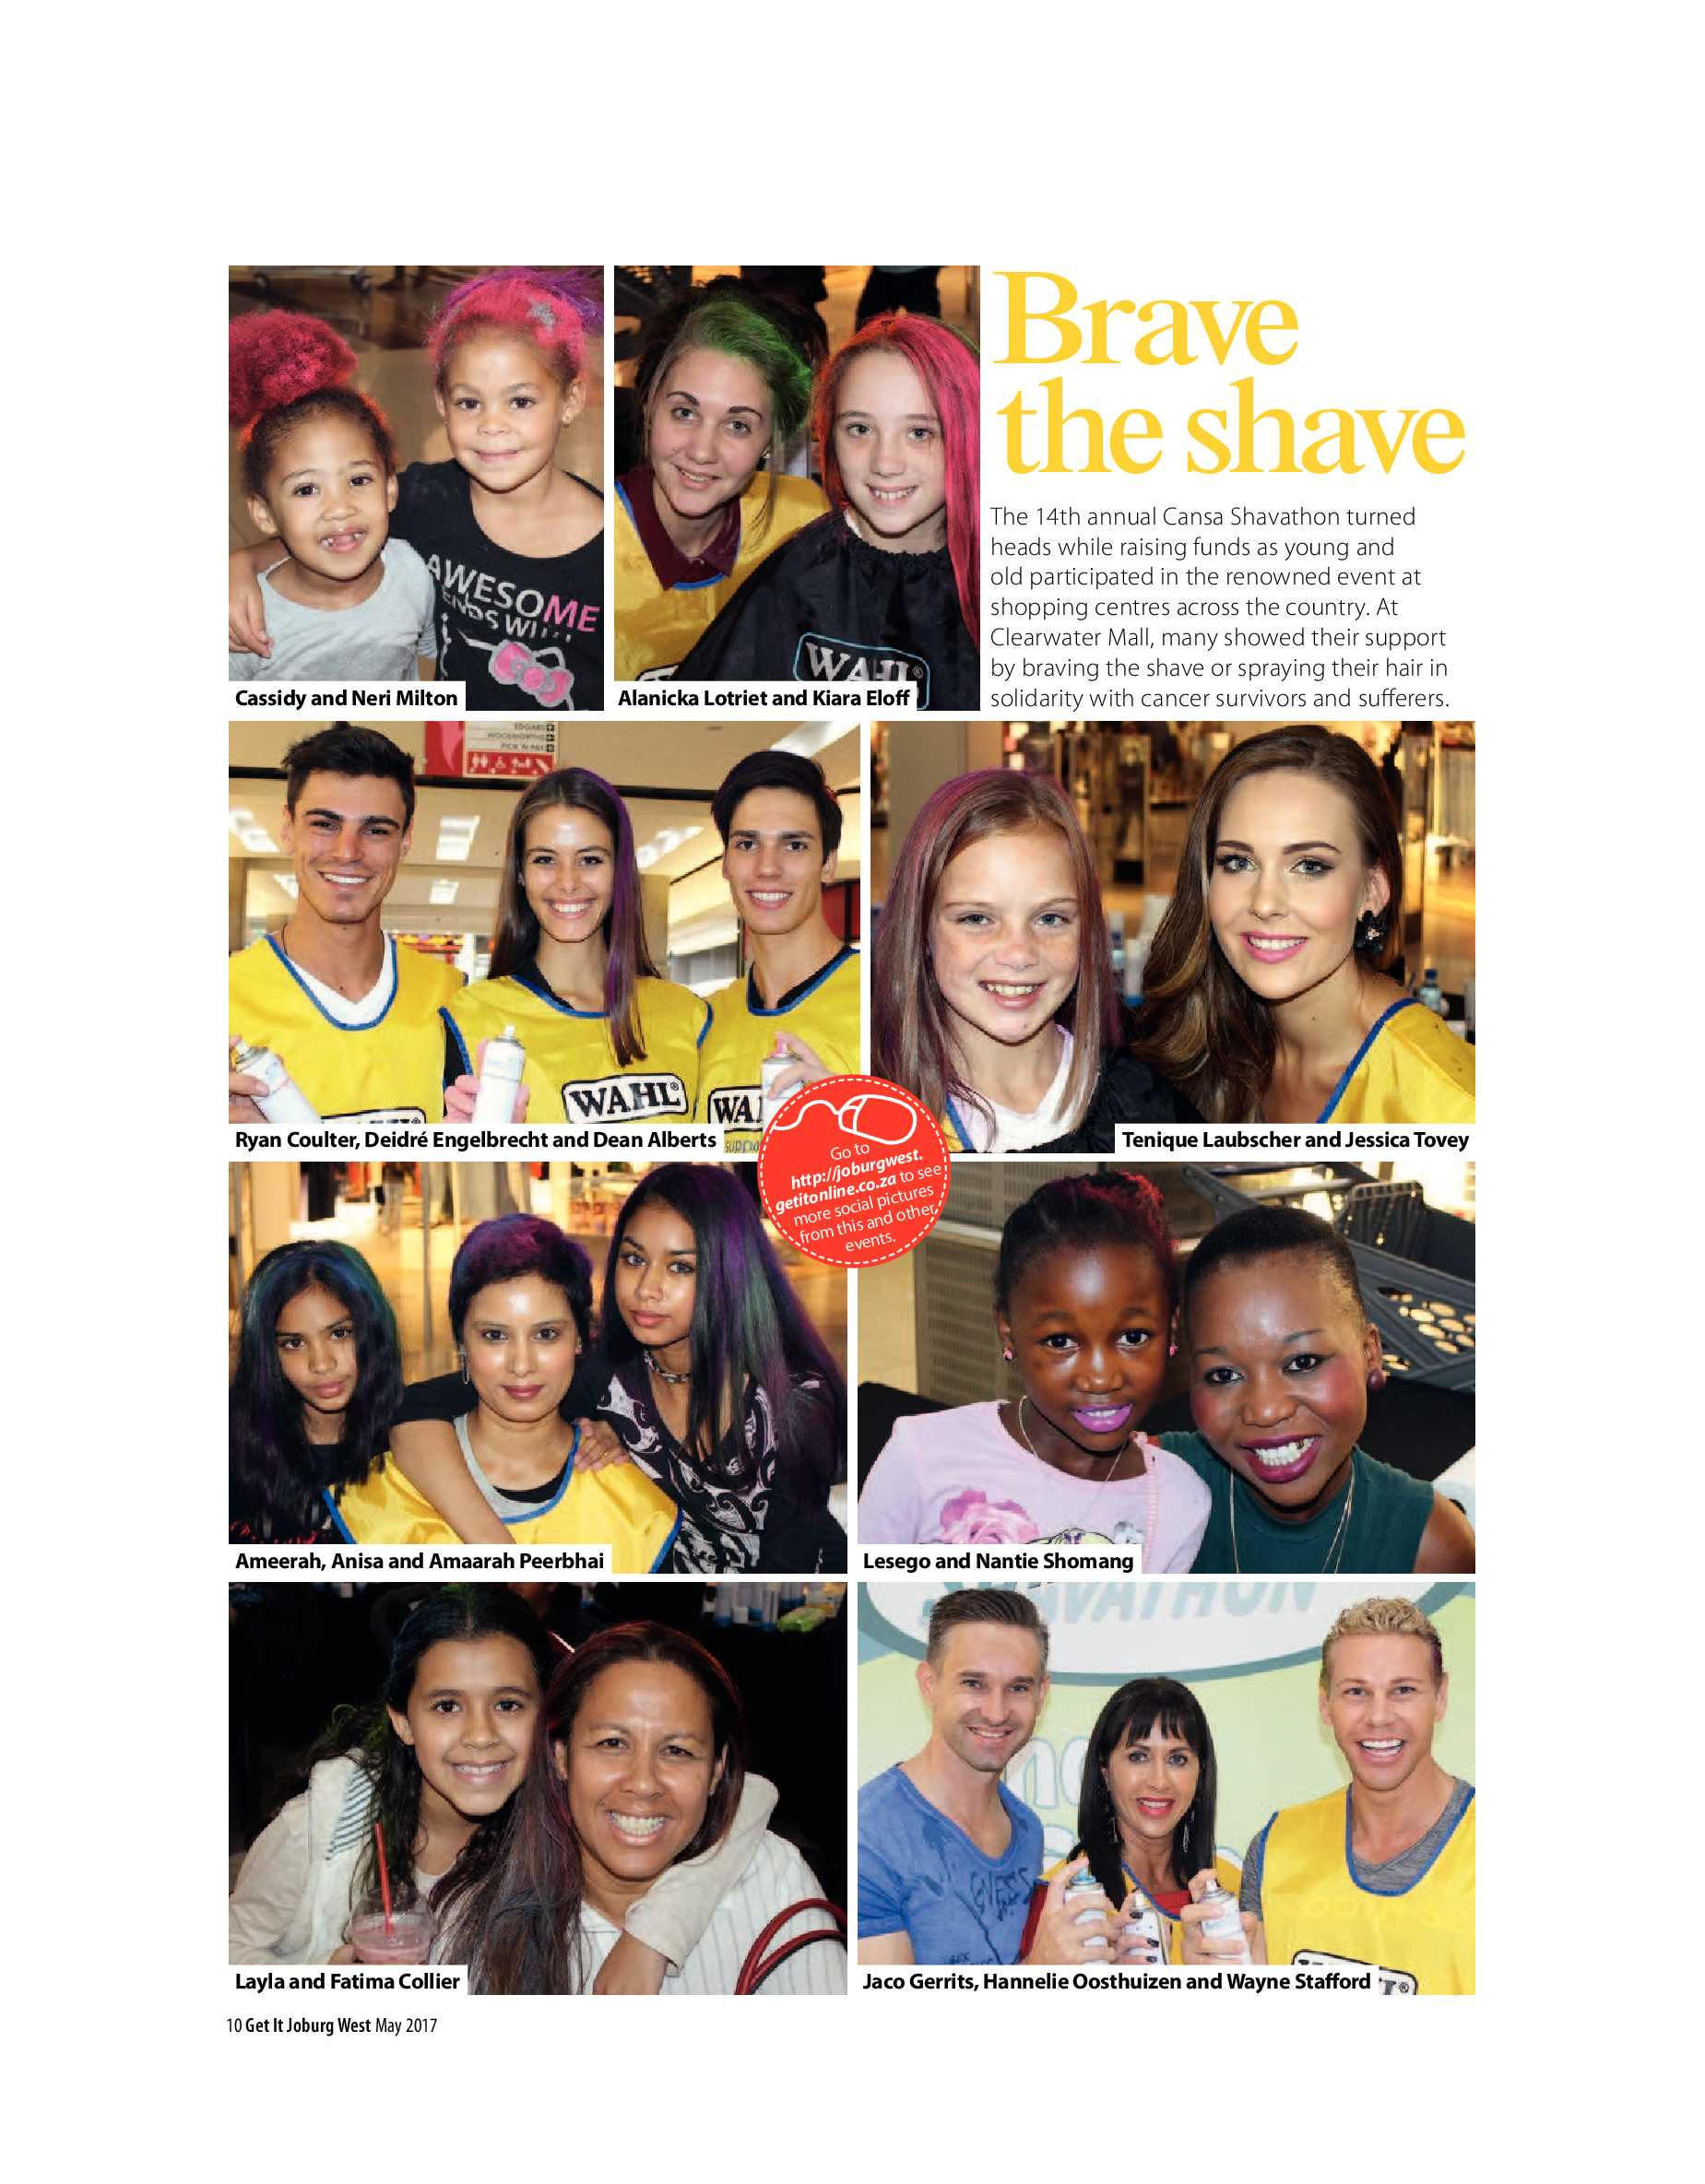 get-joburg-west-may-2017-epapers-page-10